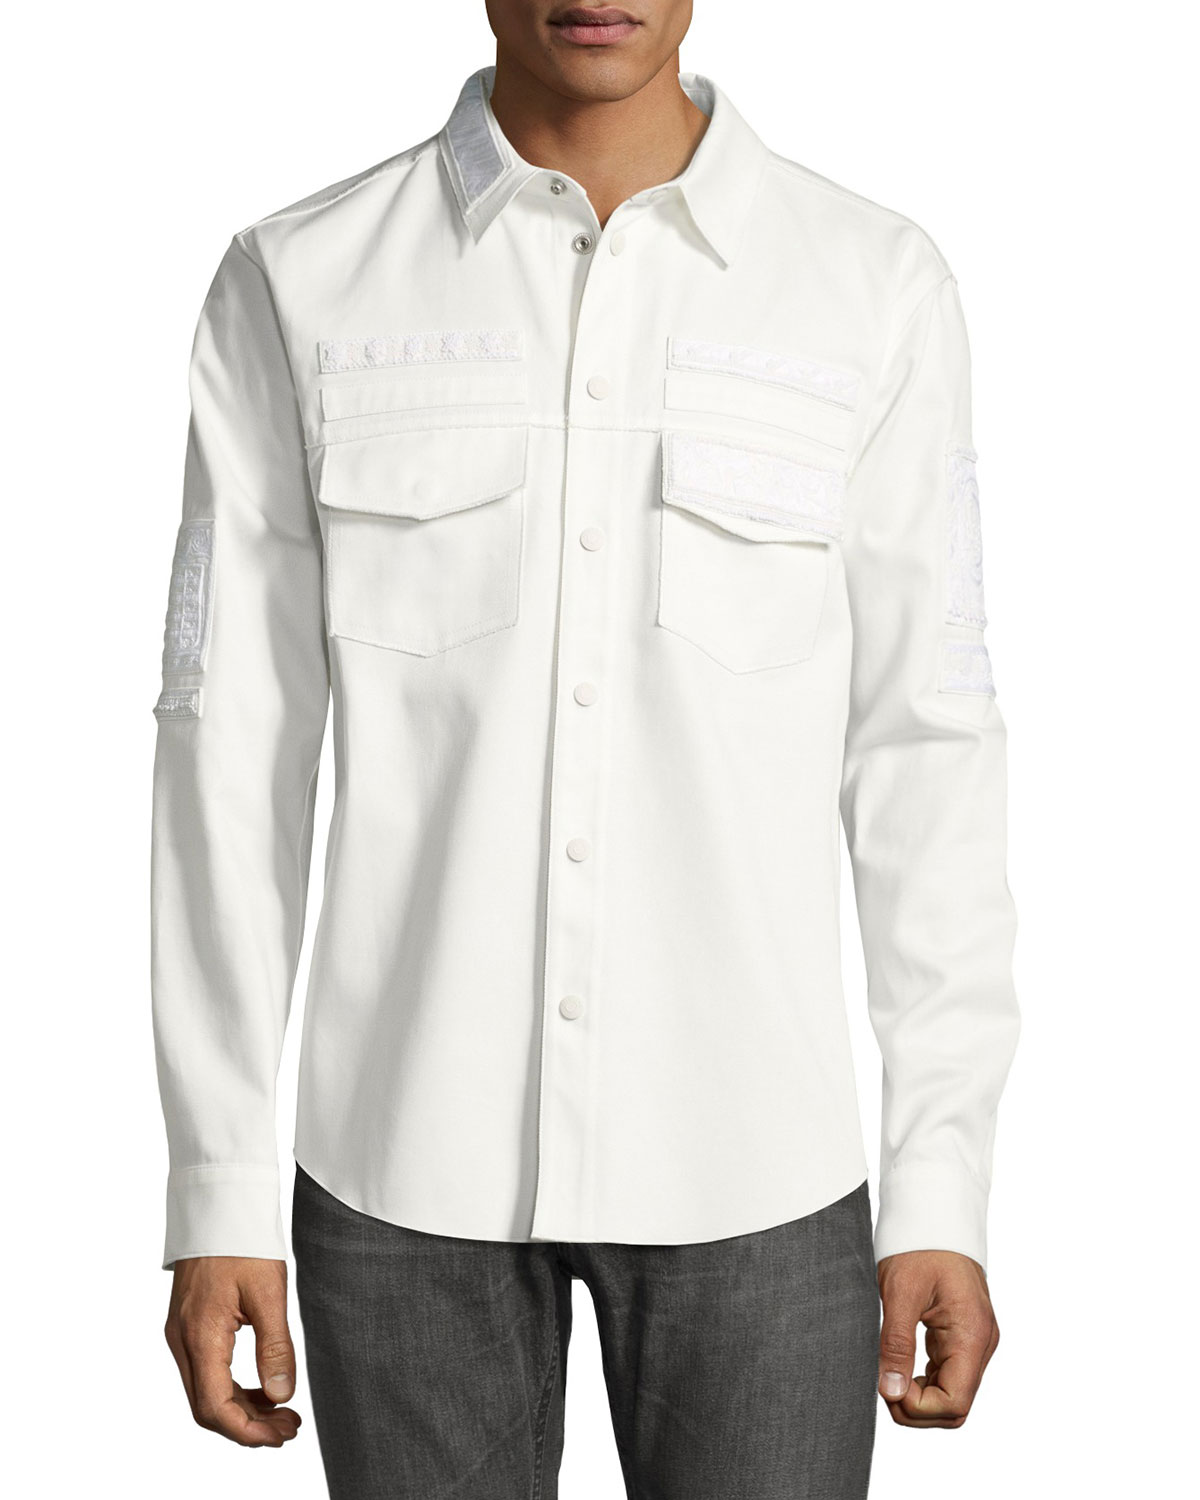 Embroidered Military Shirt, White